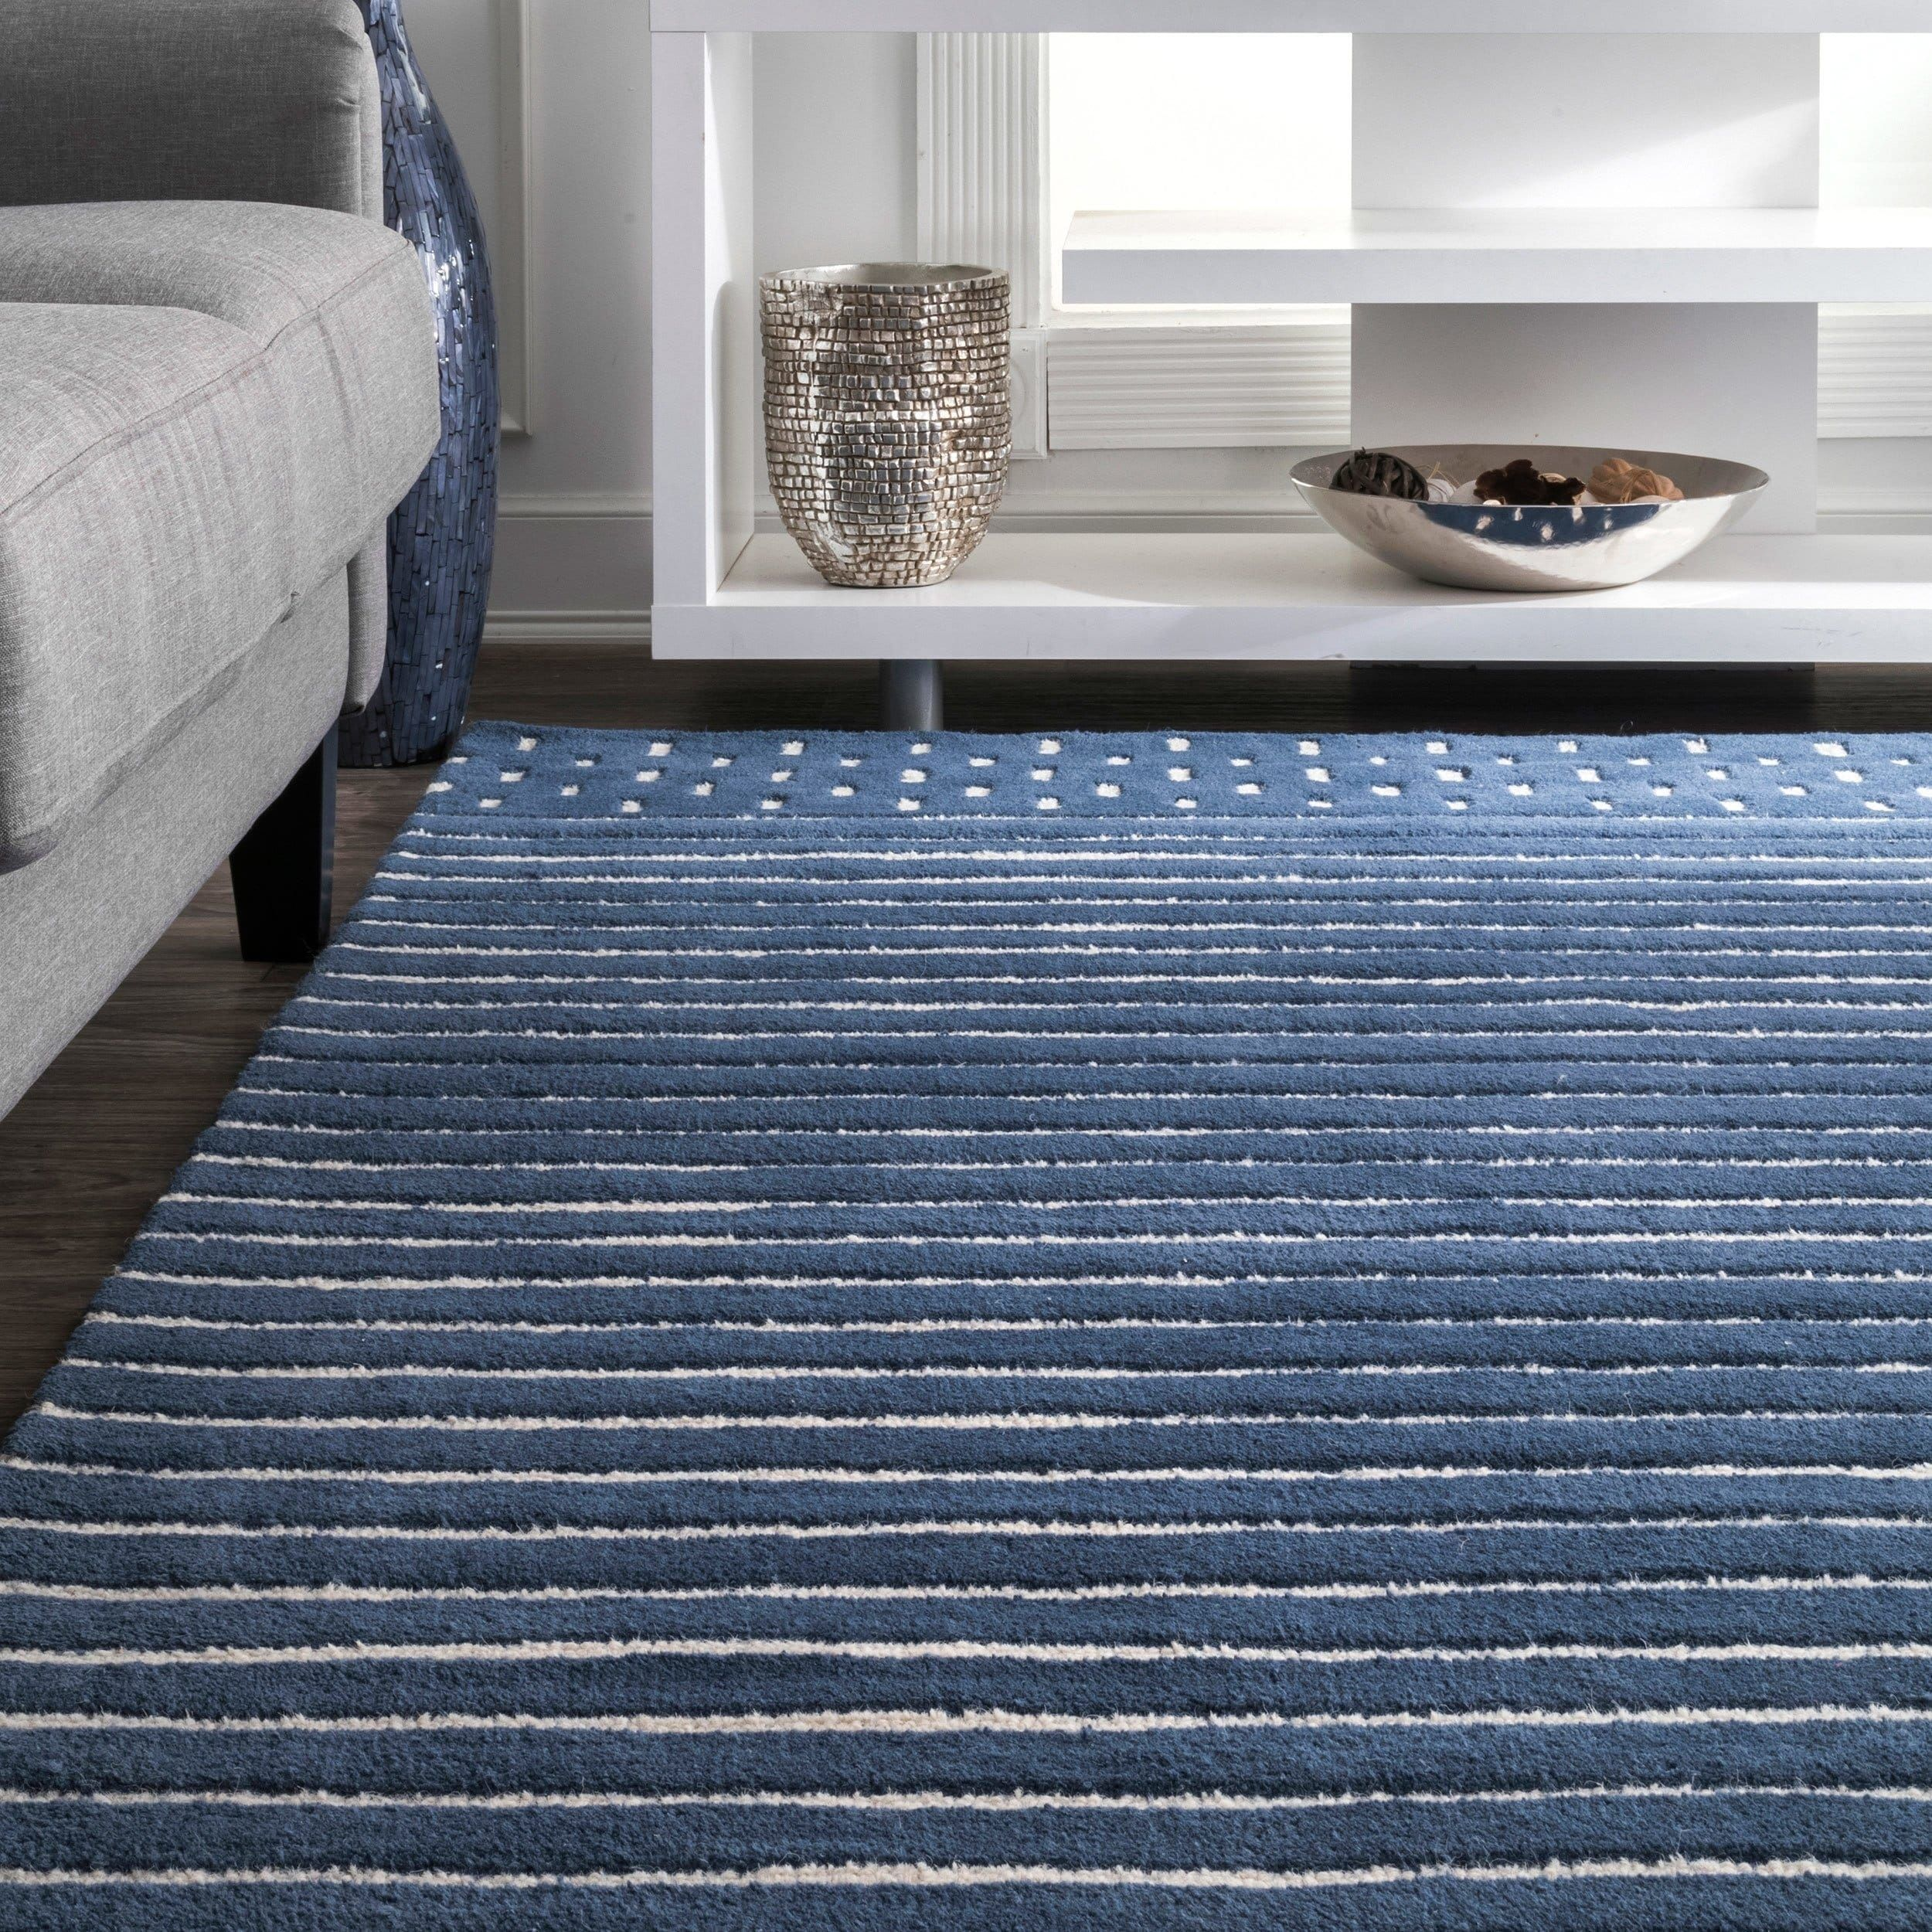 Nuloom Coastal Solid Stripes Navy Off White Wool Area Rug 3 X 5 3 X 5 Blue Products In 2019 Wool Area Rugs Striped Rug Wool Rug